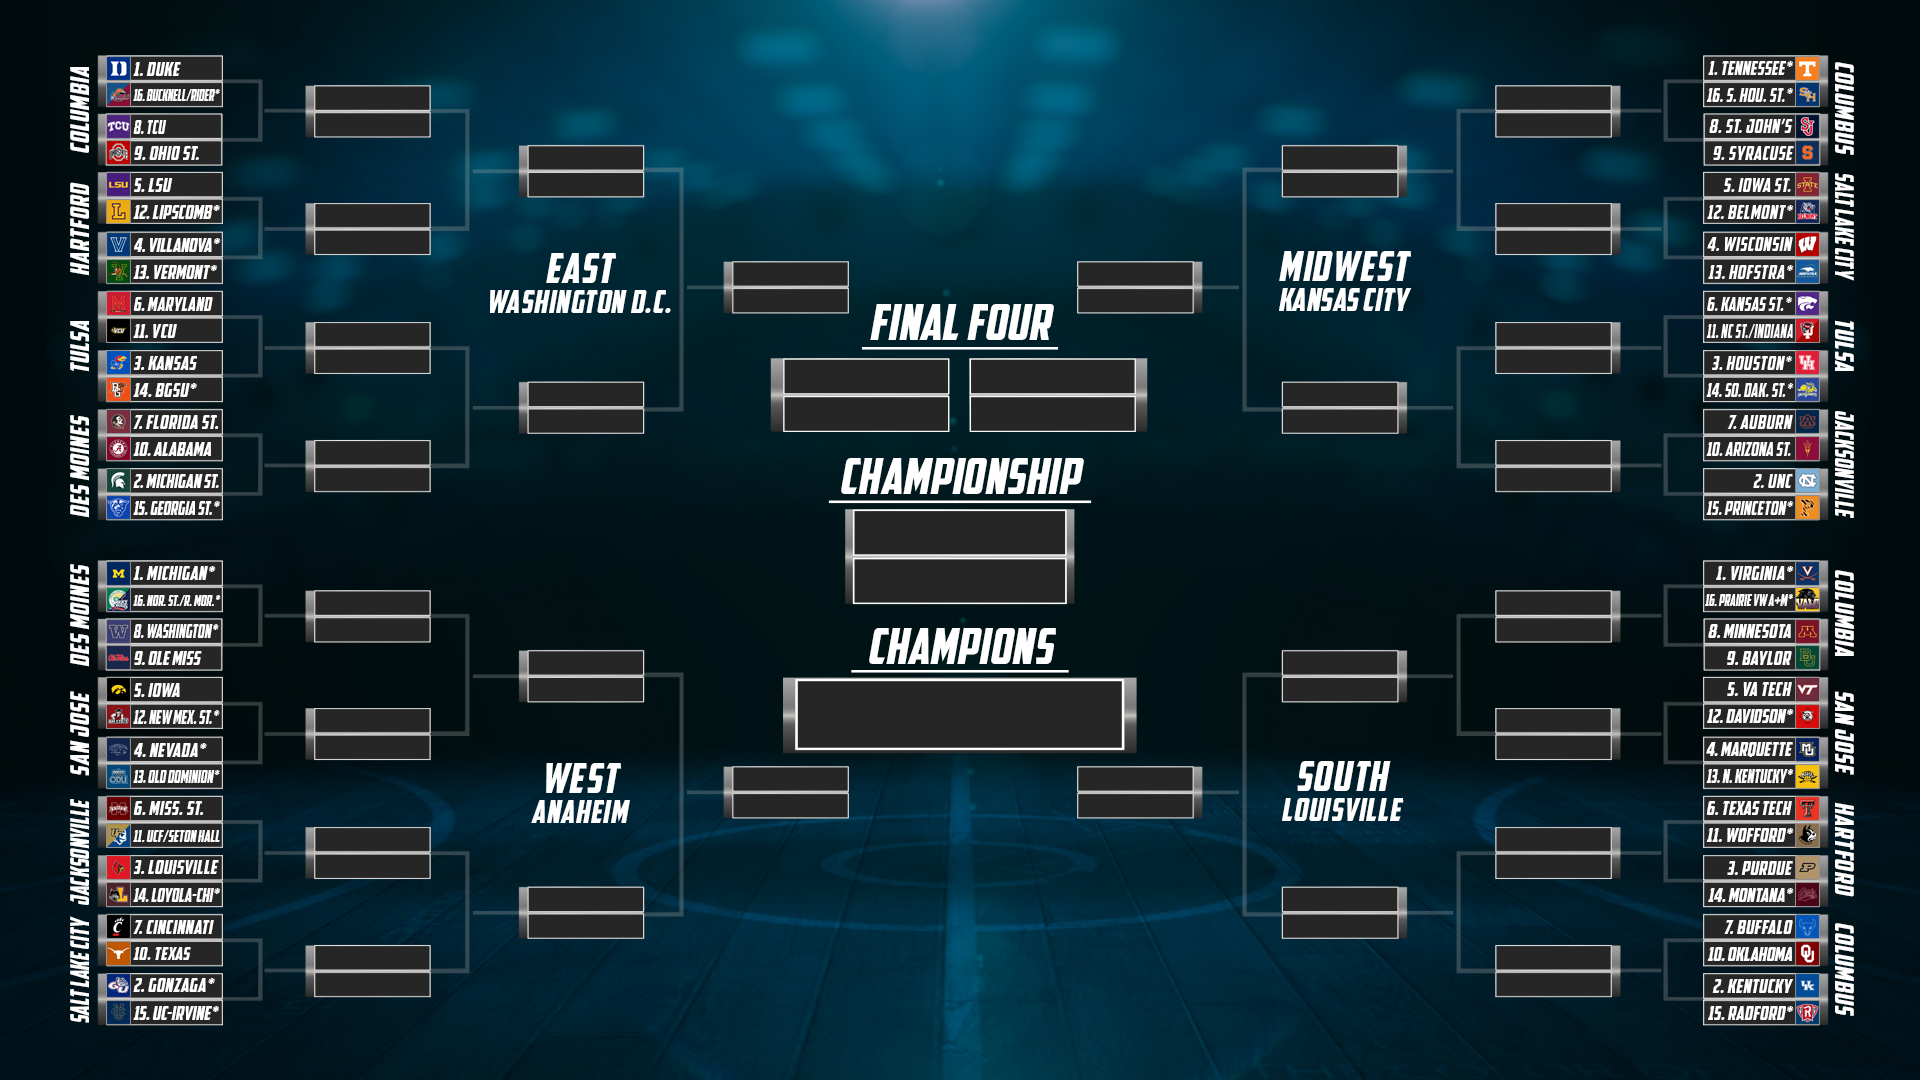 a5eb2ffb2f1 On Saturday, the NCAA selection committee will unveil the top 16 teams in  the bracket as they stand through Friday. The committee began meeting on  Tuesday ...